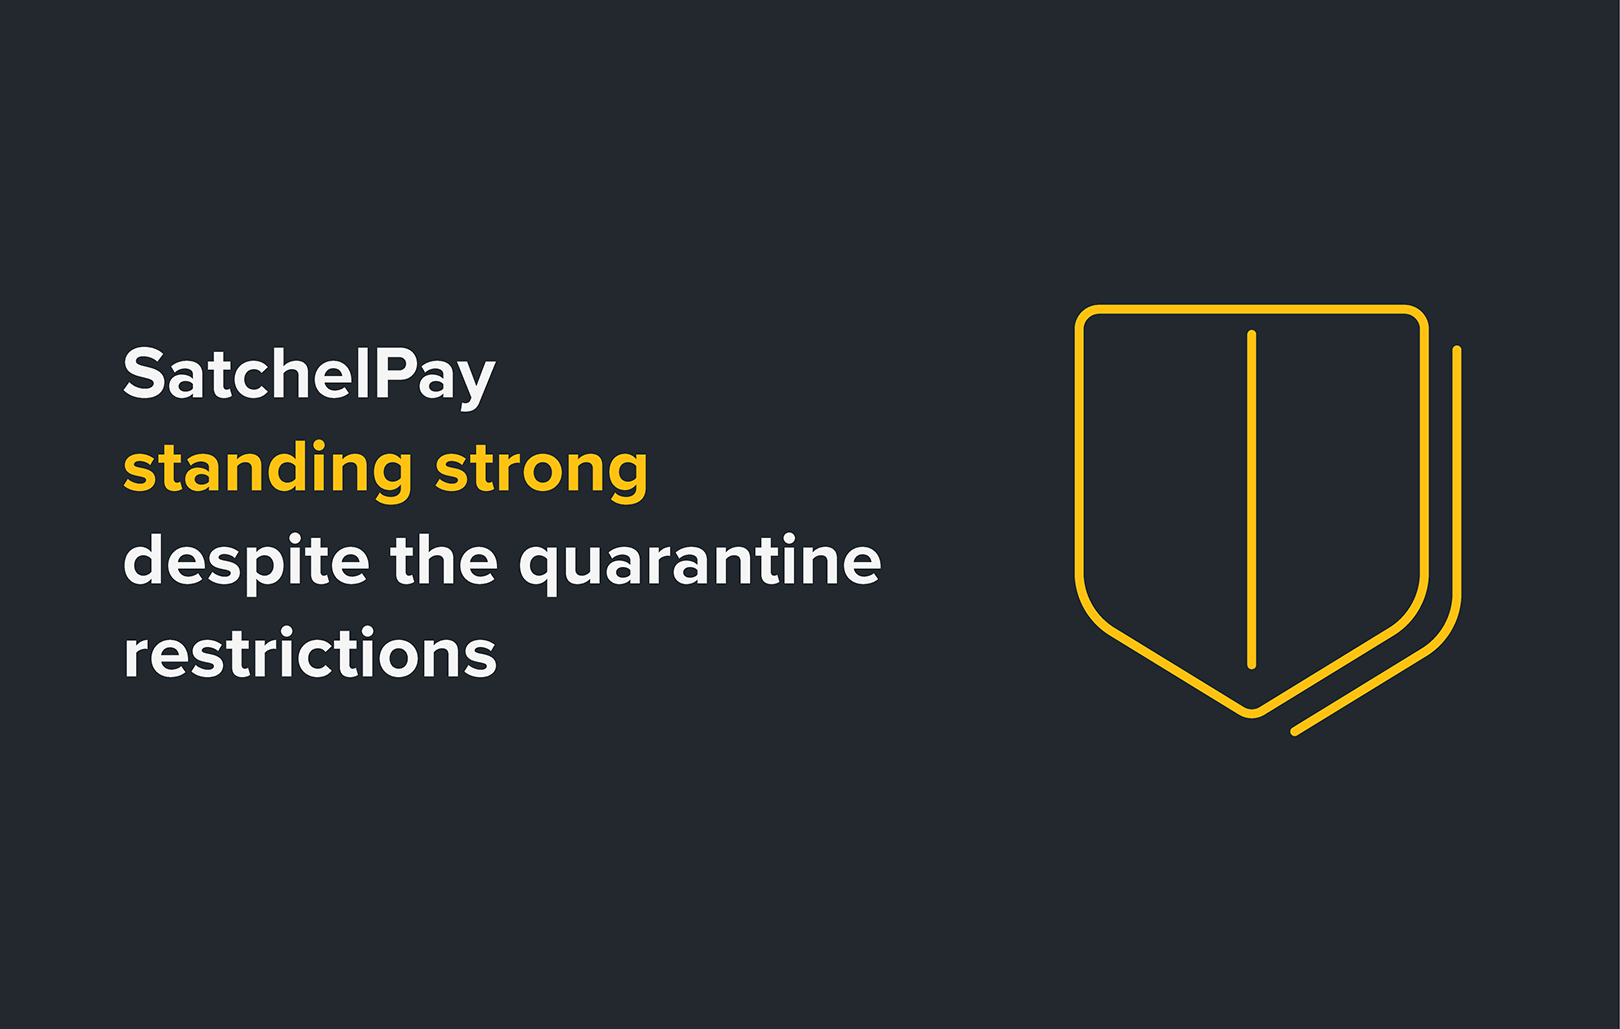 SatchelPay standing strong despite the quarantine restrictions